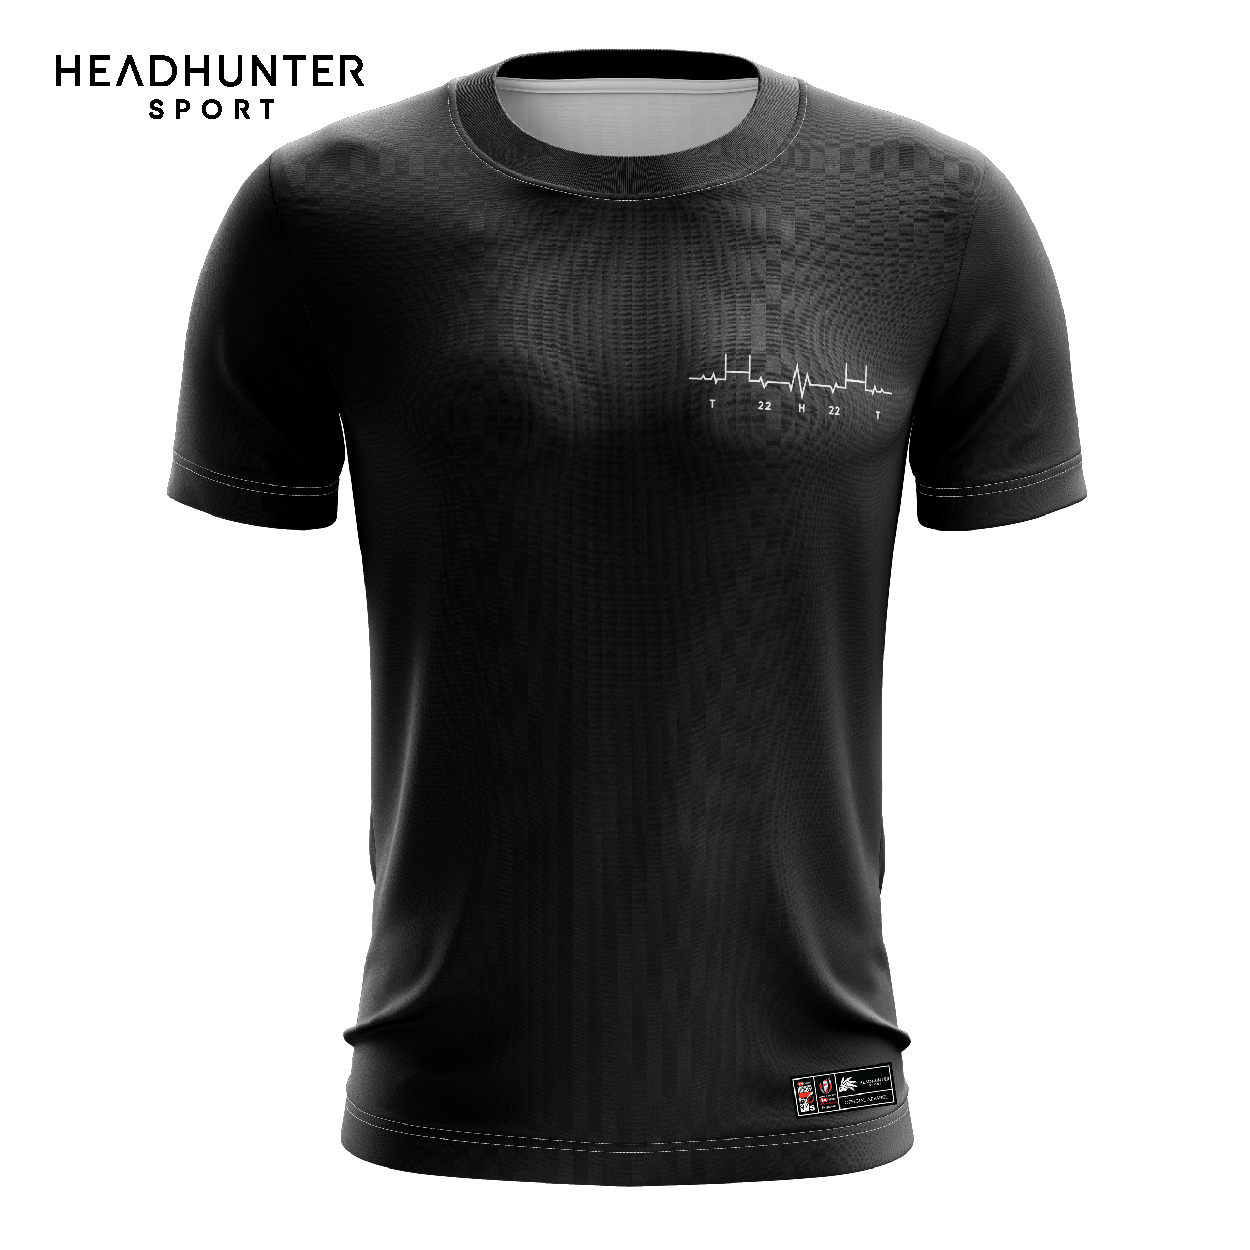 HSBC RUGBY 7S SERIES SINGAPORE 2019 MERCHANDISE BLACK T-SHIRT